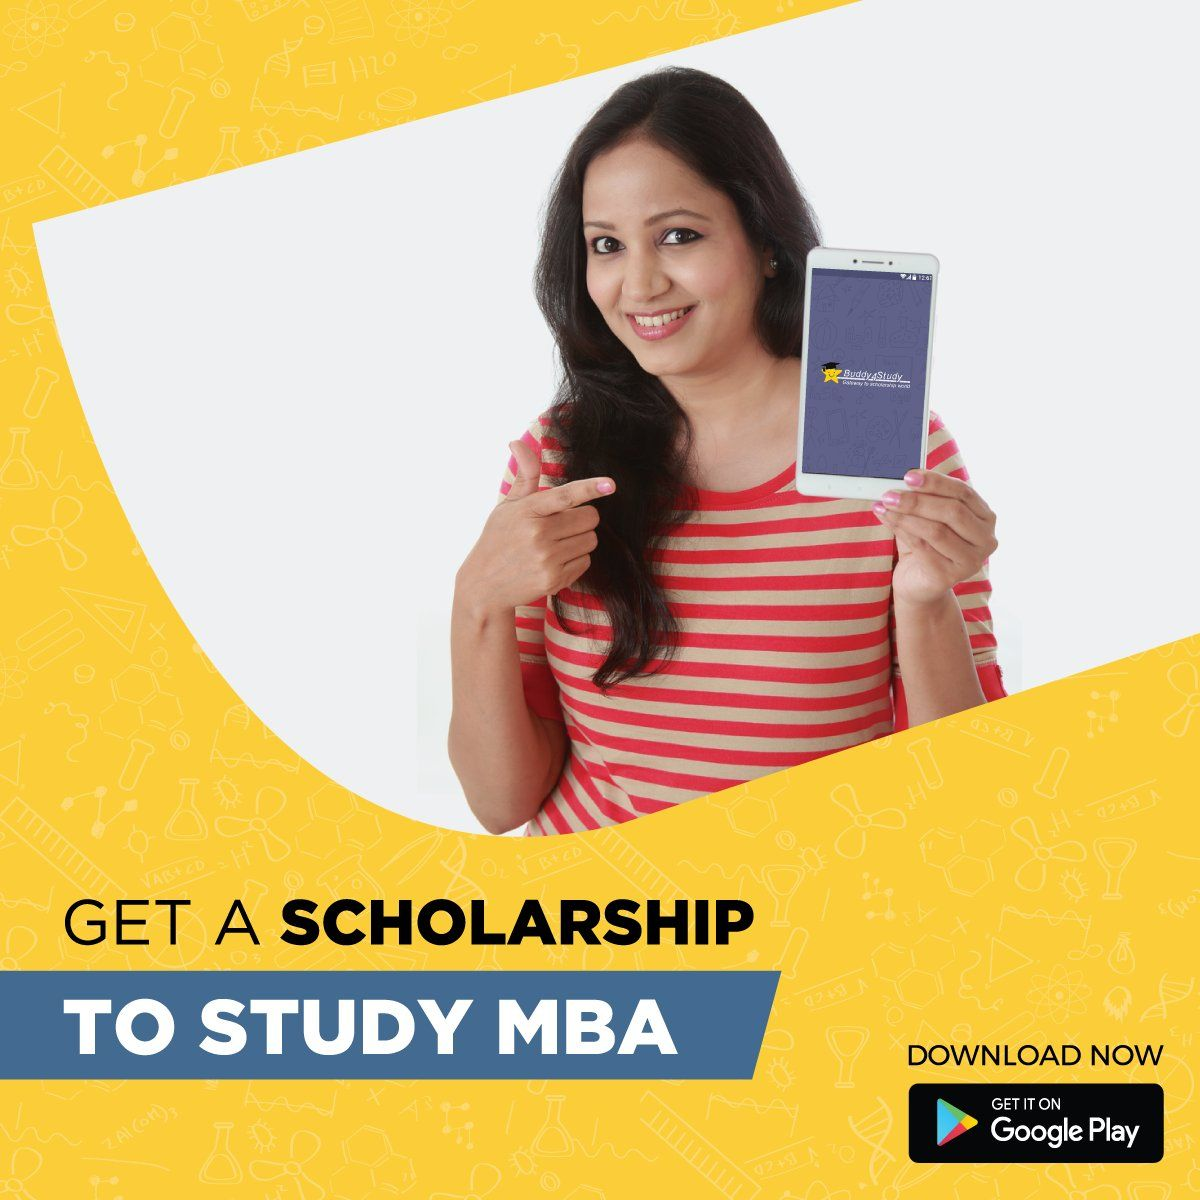 Looking for financial assistance for your MBA degree? Get